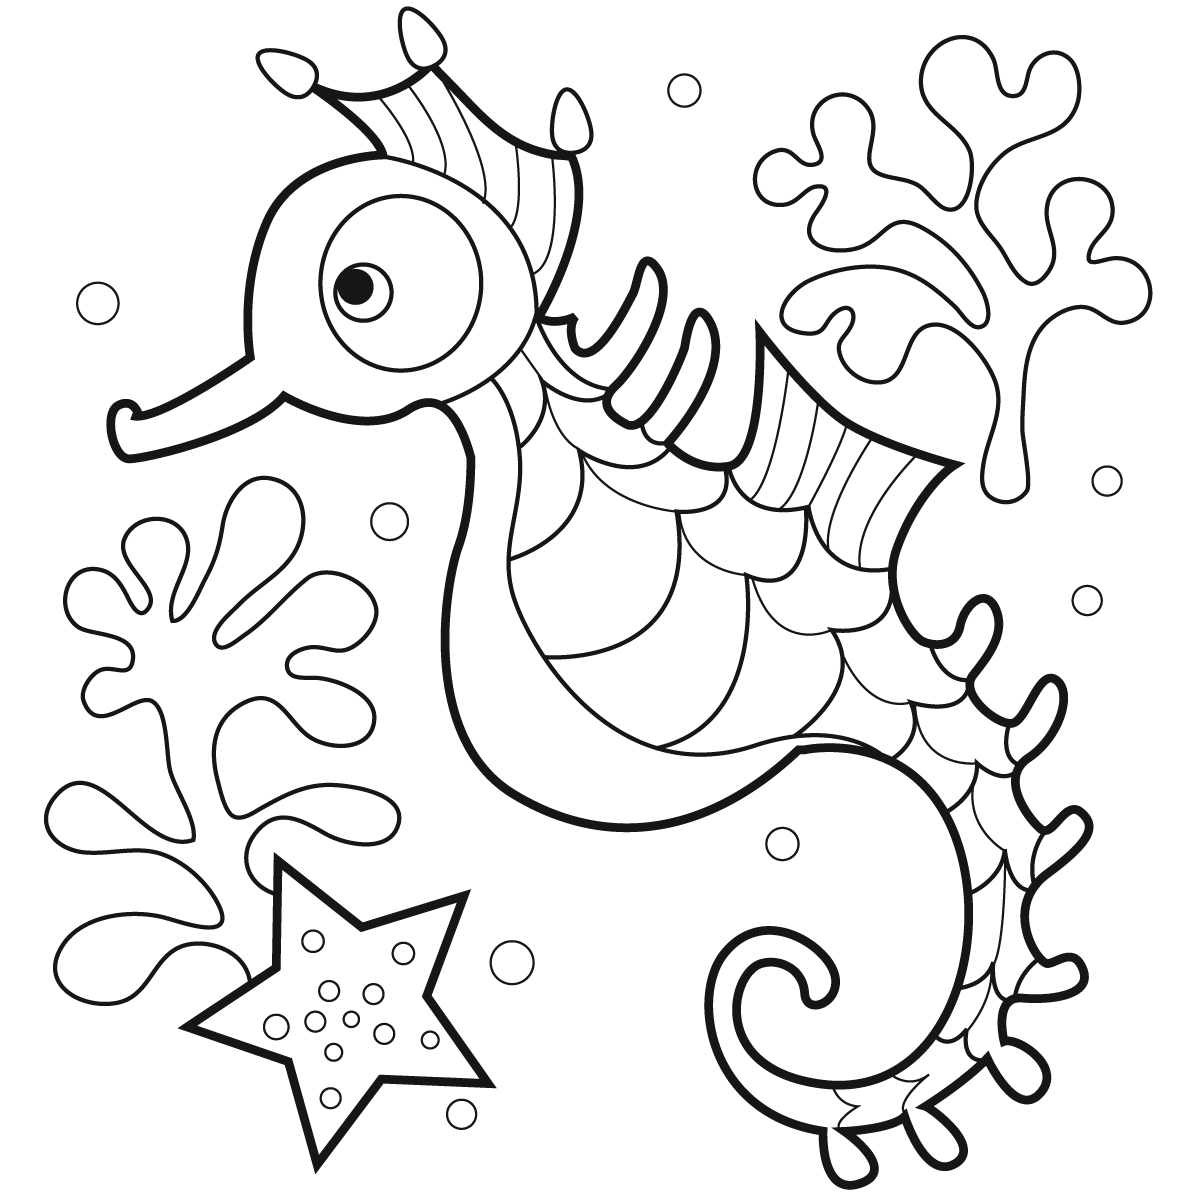 Free printable seahorse coloring pages for kids for Fun coloring pages for kids